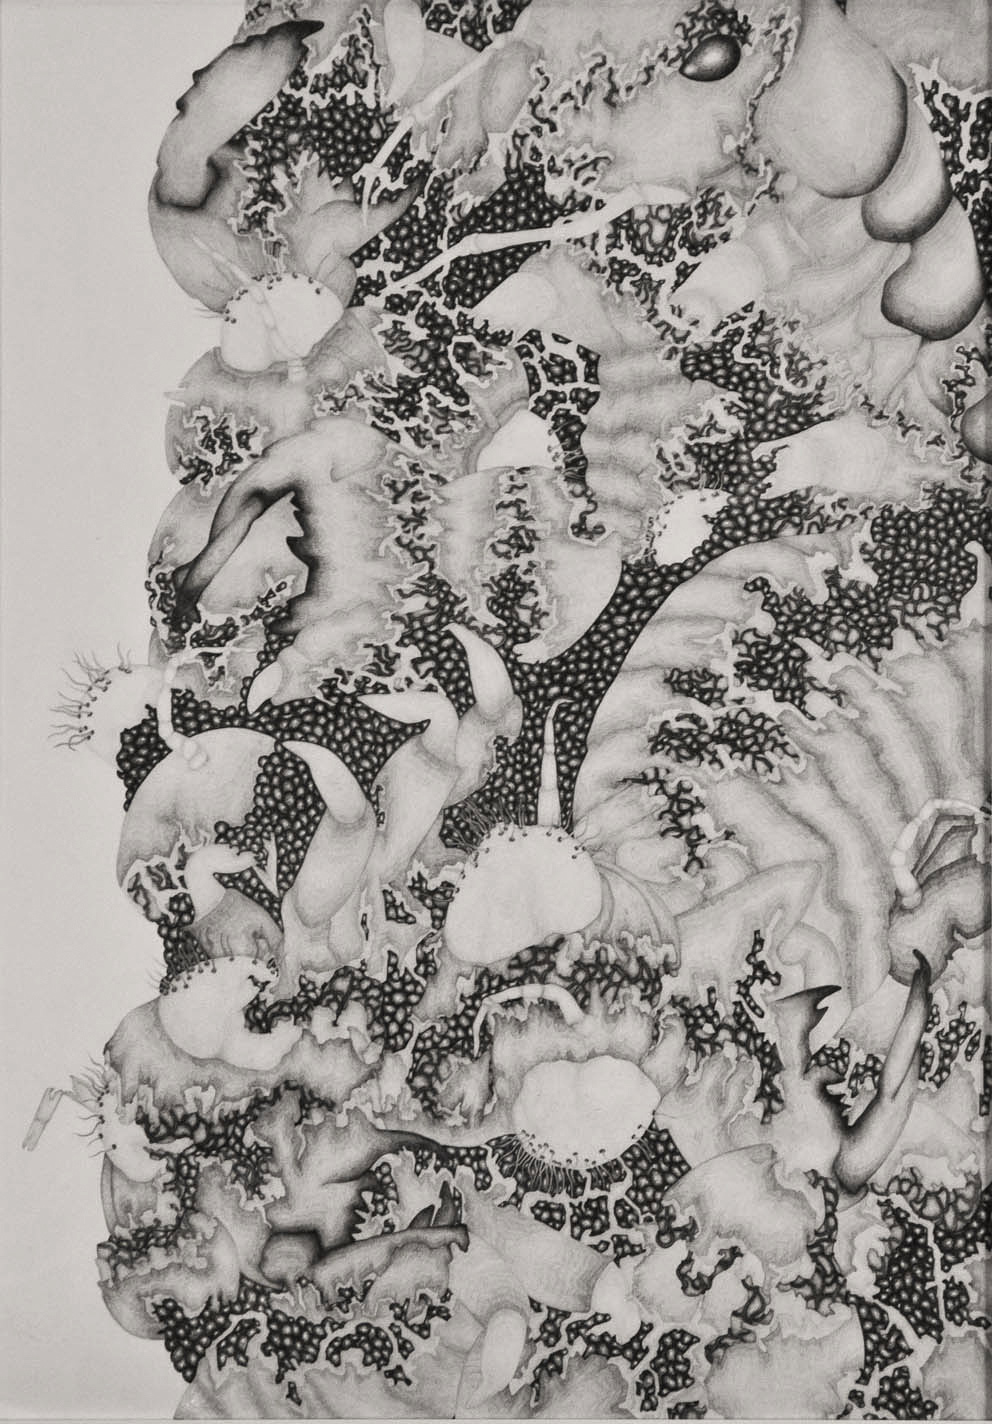 Entropy,  2013. 70cmx50cm. Pencil on Fabriano paper.